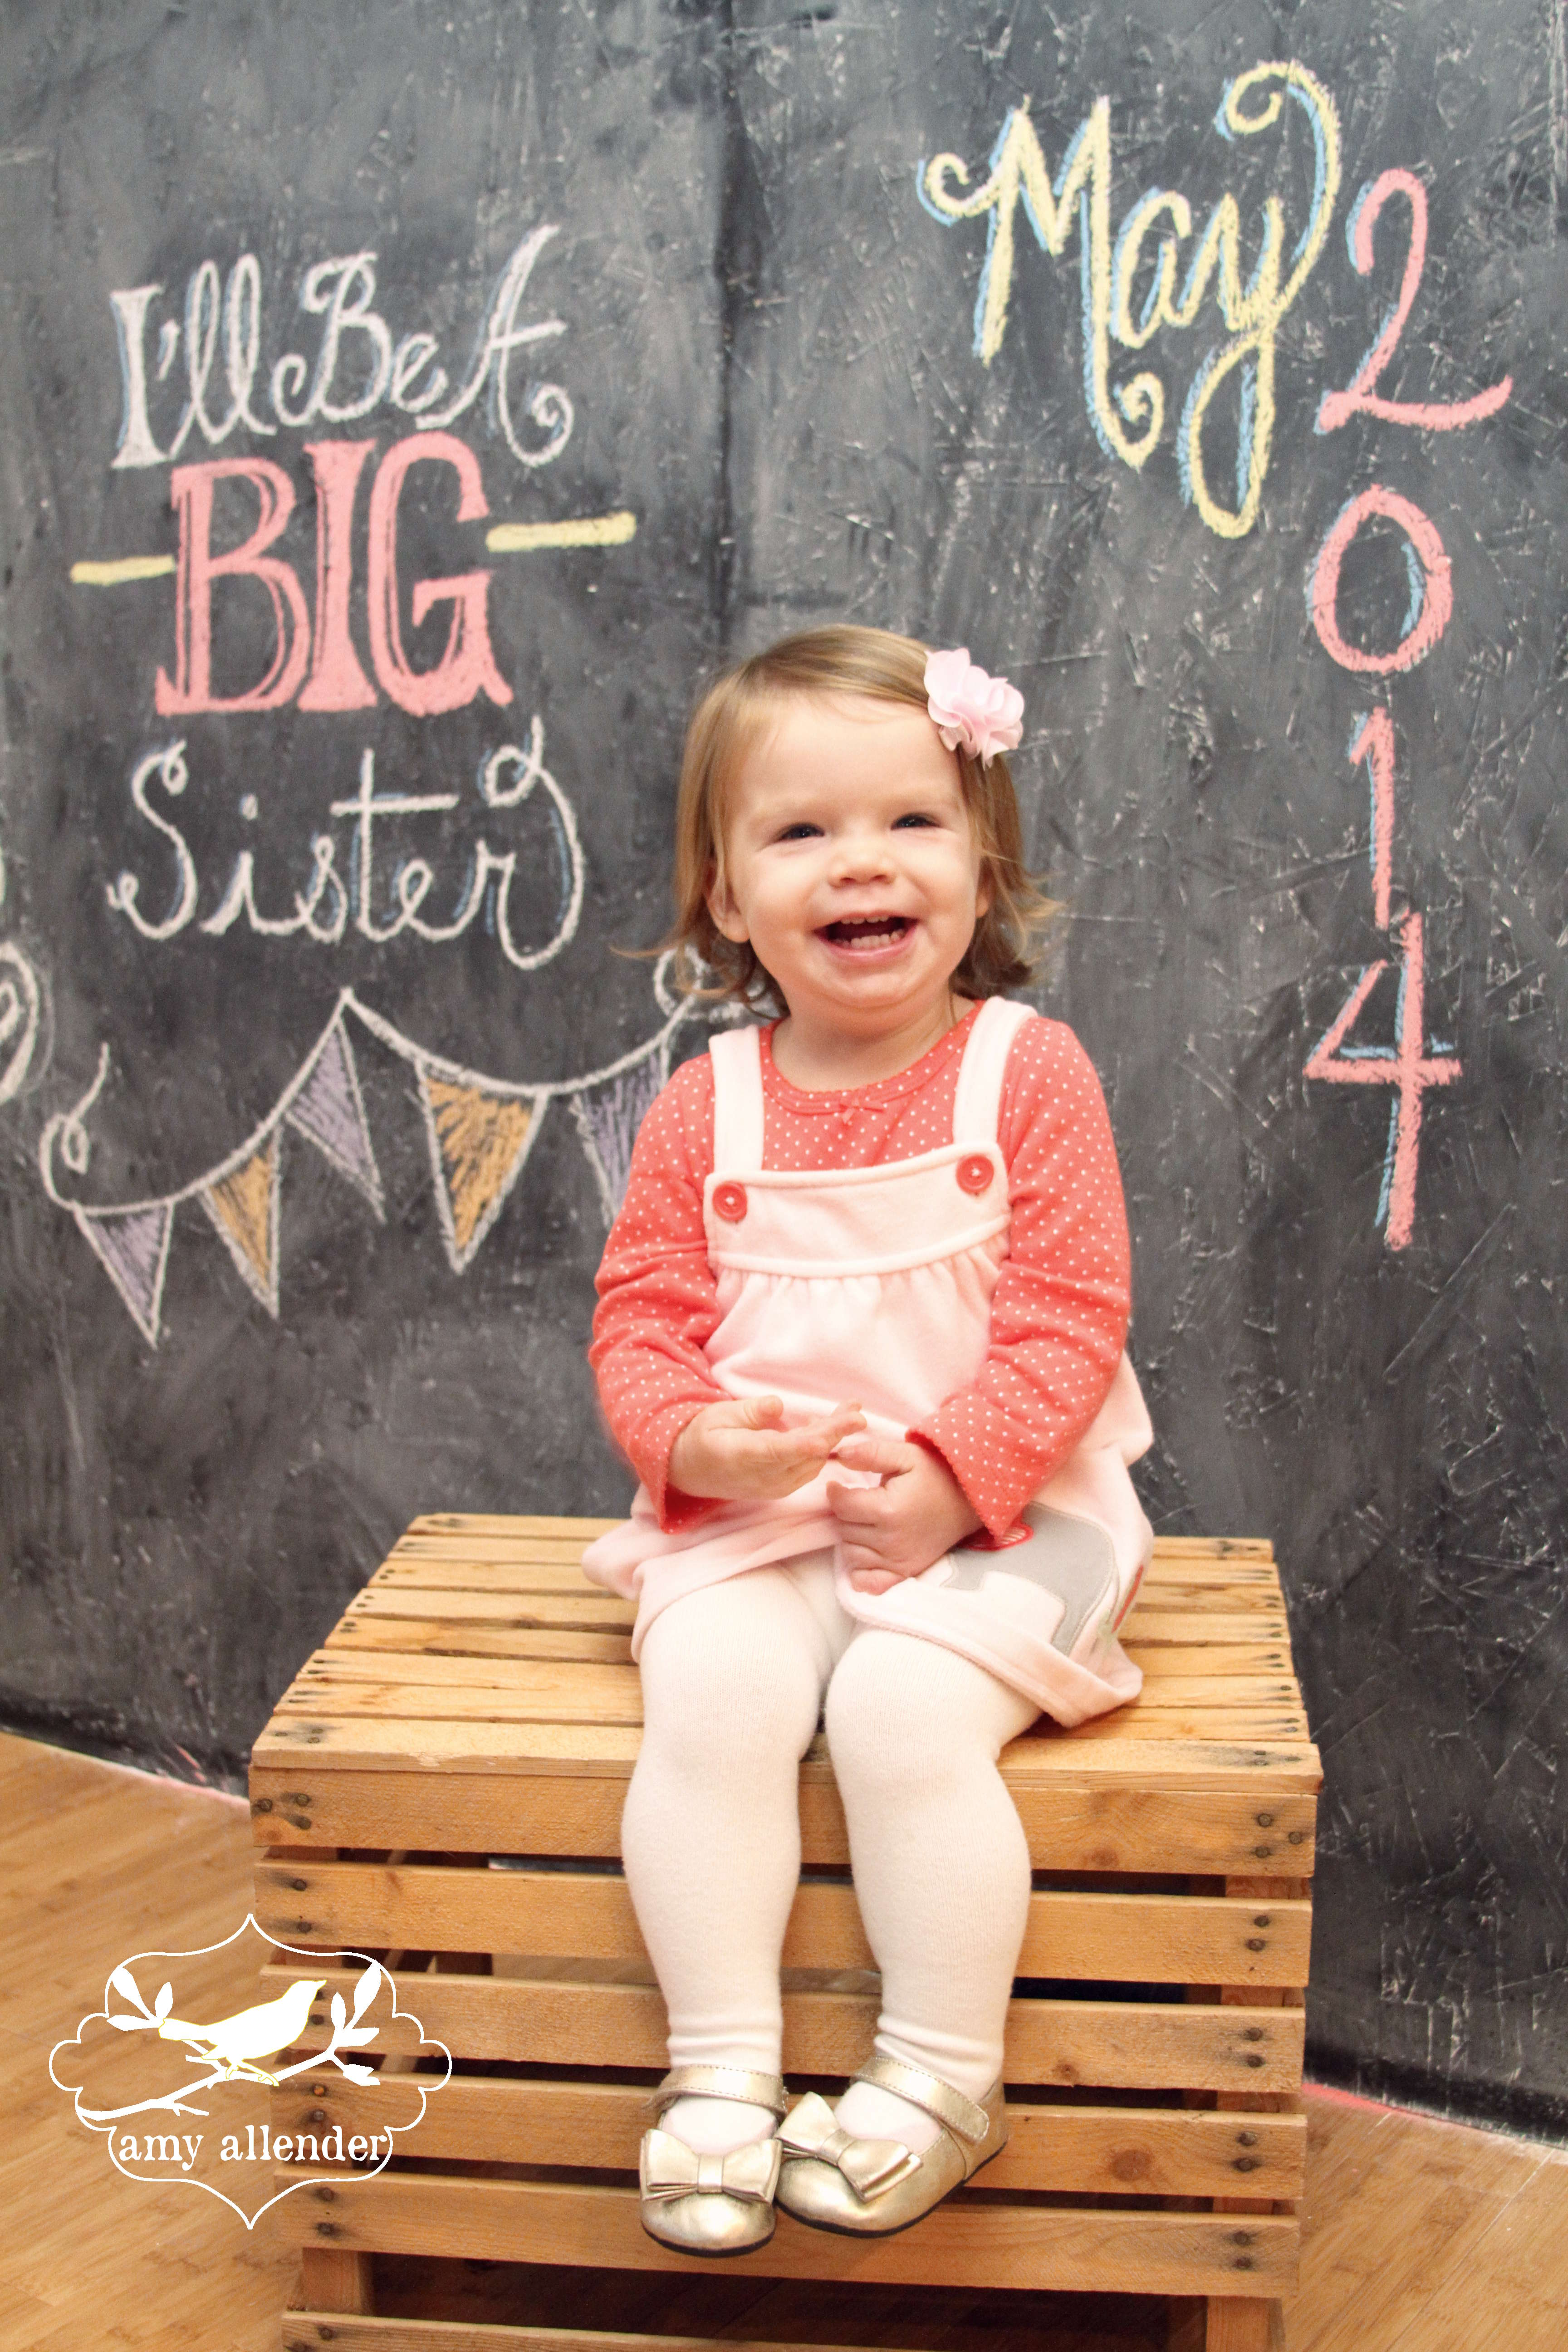 Baby Announcement Mini a chalkboard sneak peek amy allender – Big Sister Birth Announcement